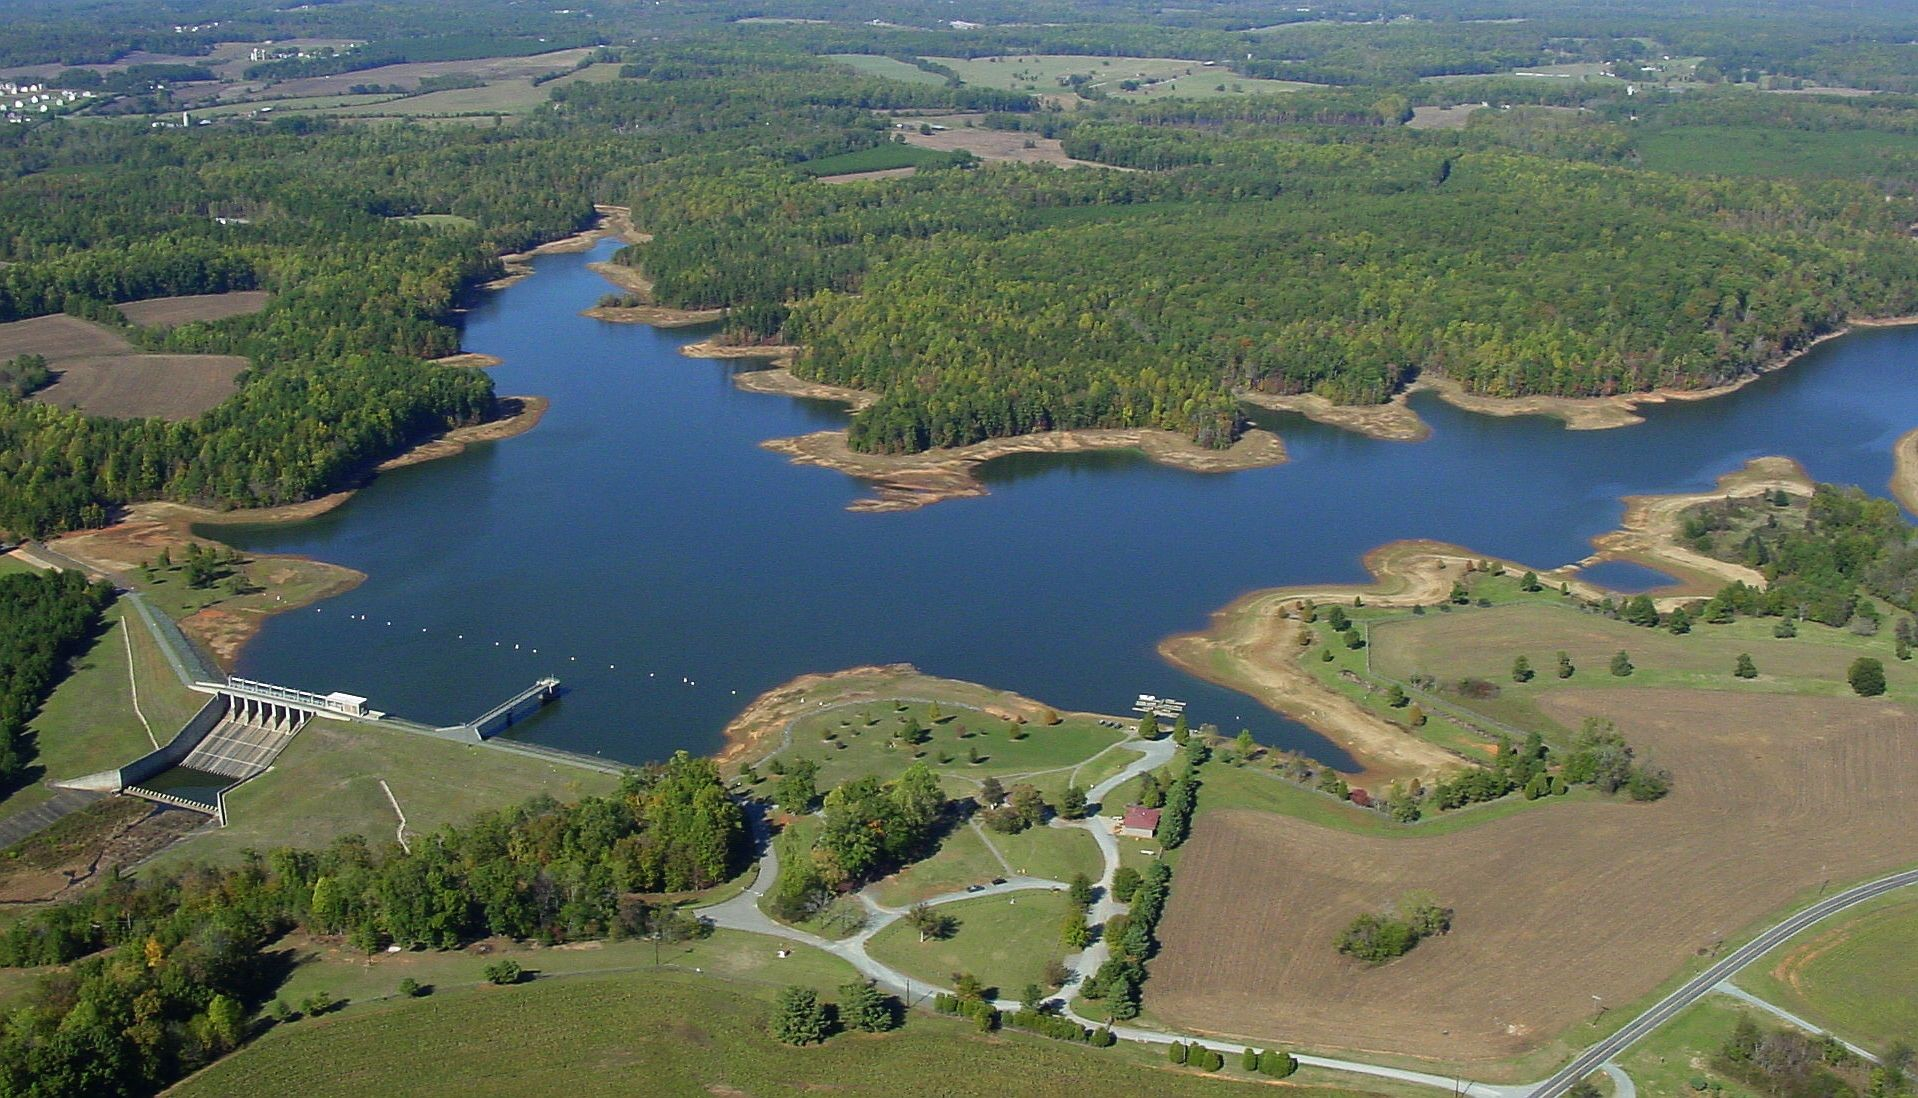 Aerial Picture of Cane Creek During Drought